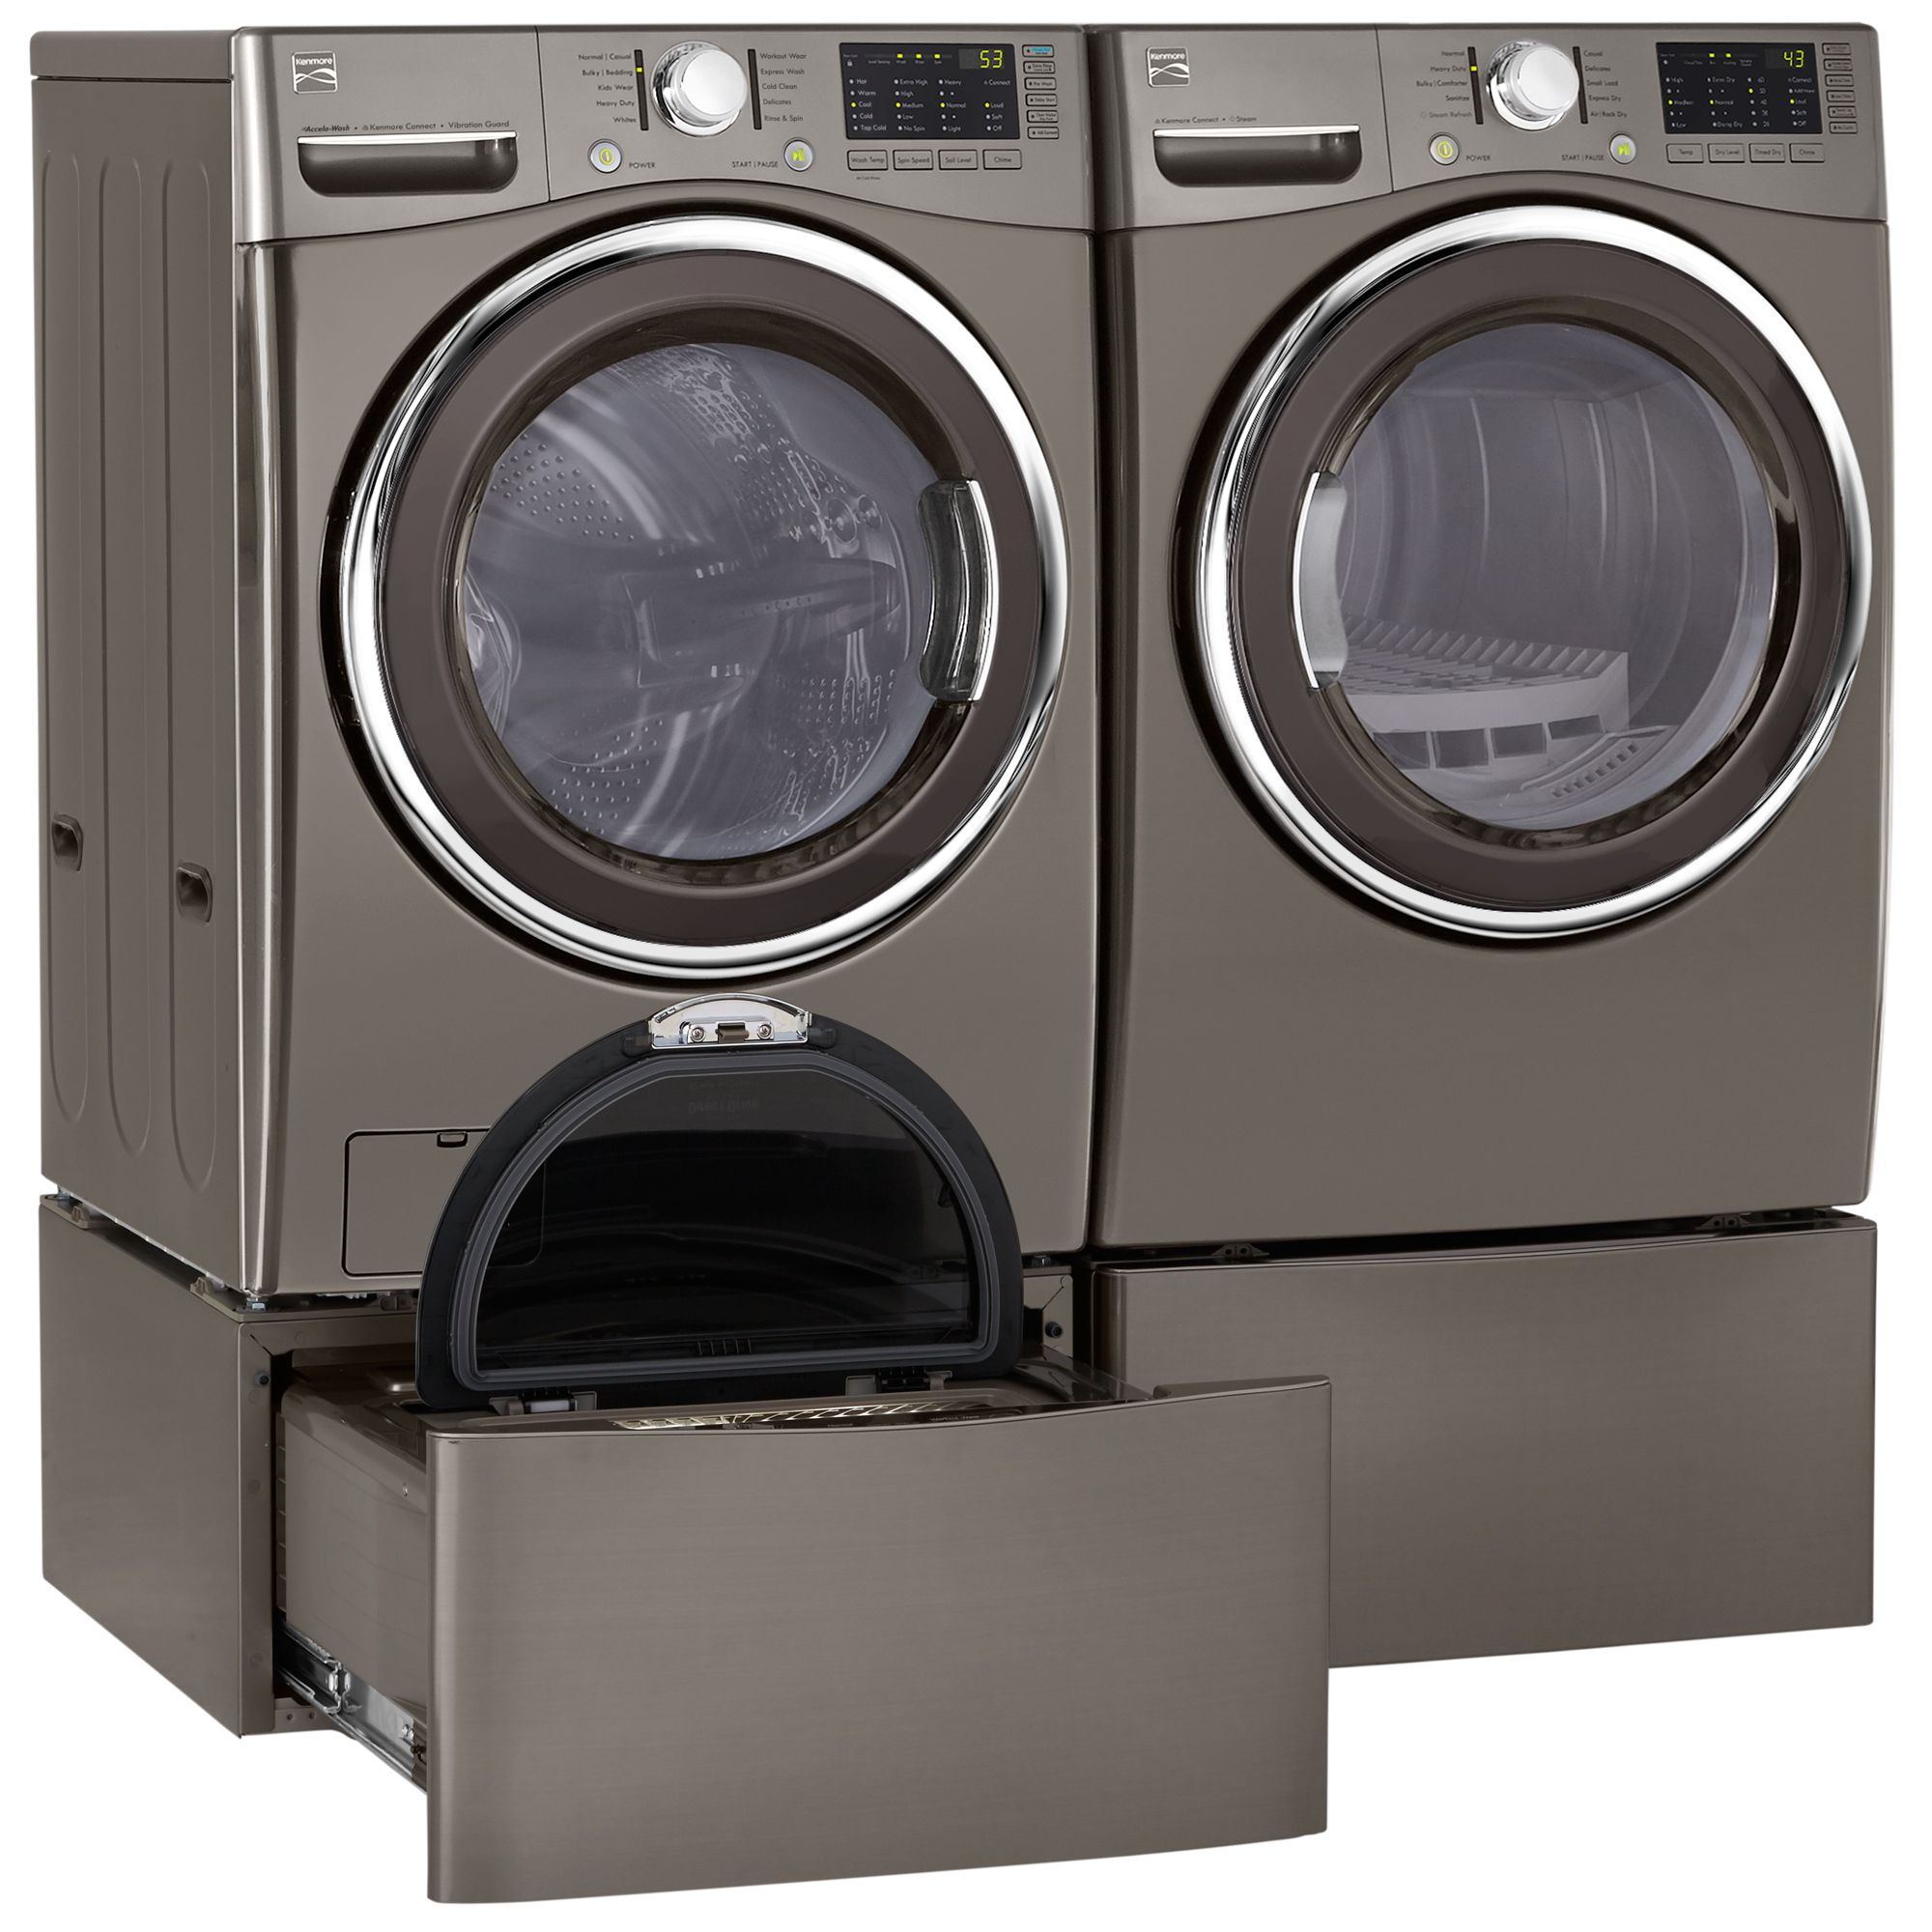 4.5 cu. ft. Front-Load Washer & 7.3 cu. ft. Front-Load Flip Control Gas or Electric Dryer with Optional Pedestal